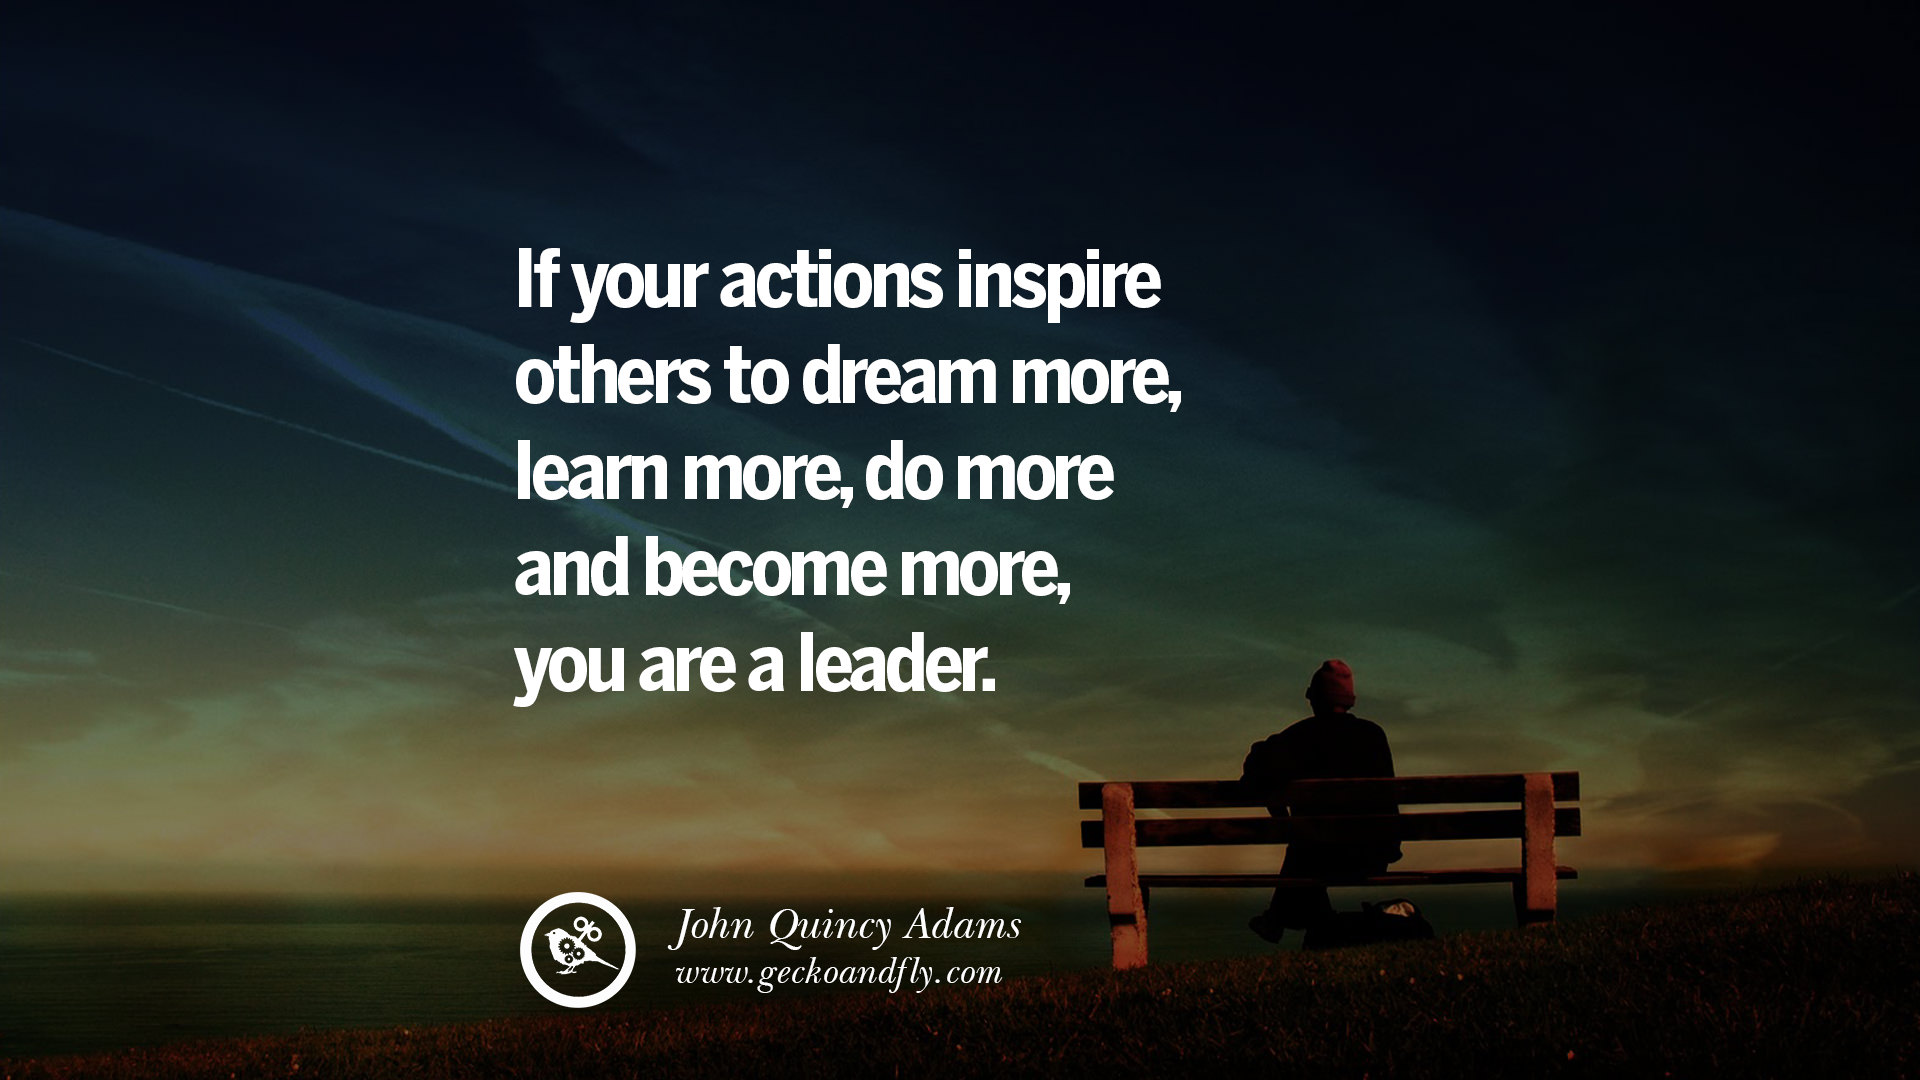 Inspiring Leadership Quotes Alluring 18 Uplifting And Motivational Quotes On Management Leadership